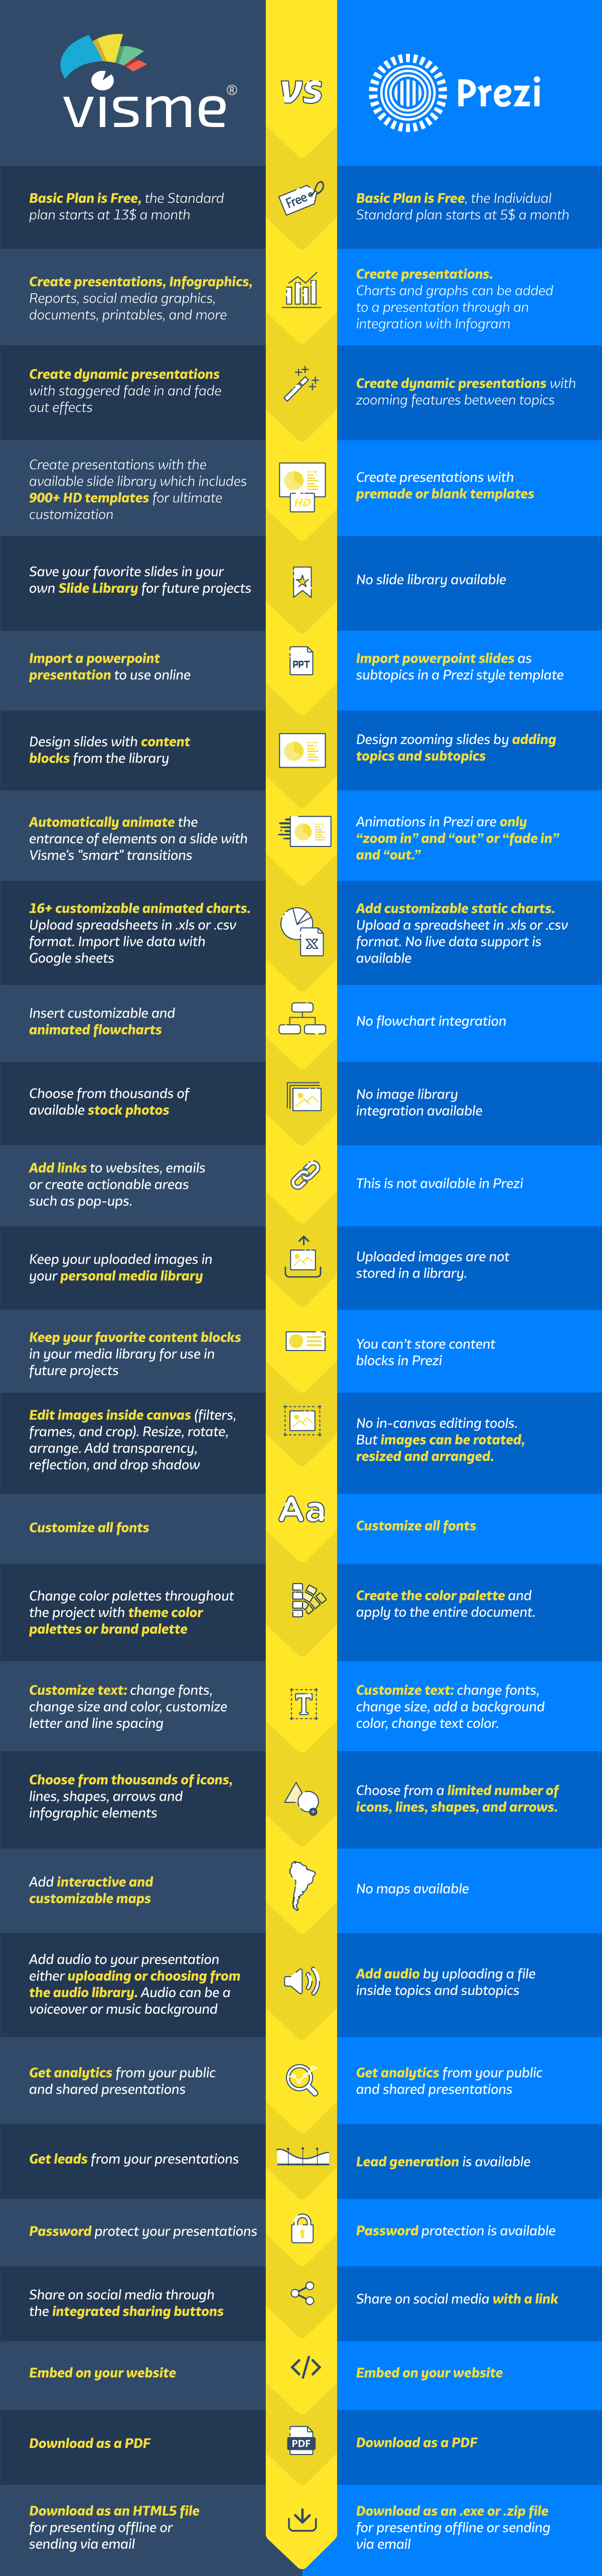 prezi alternative visme vs prezi comparison guide infographic